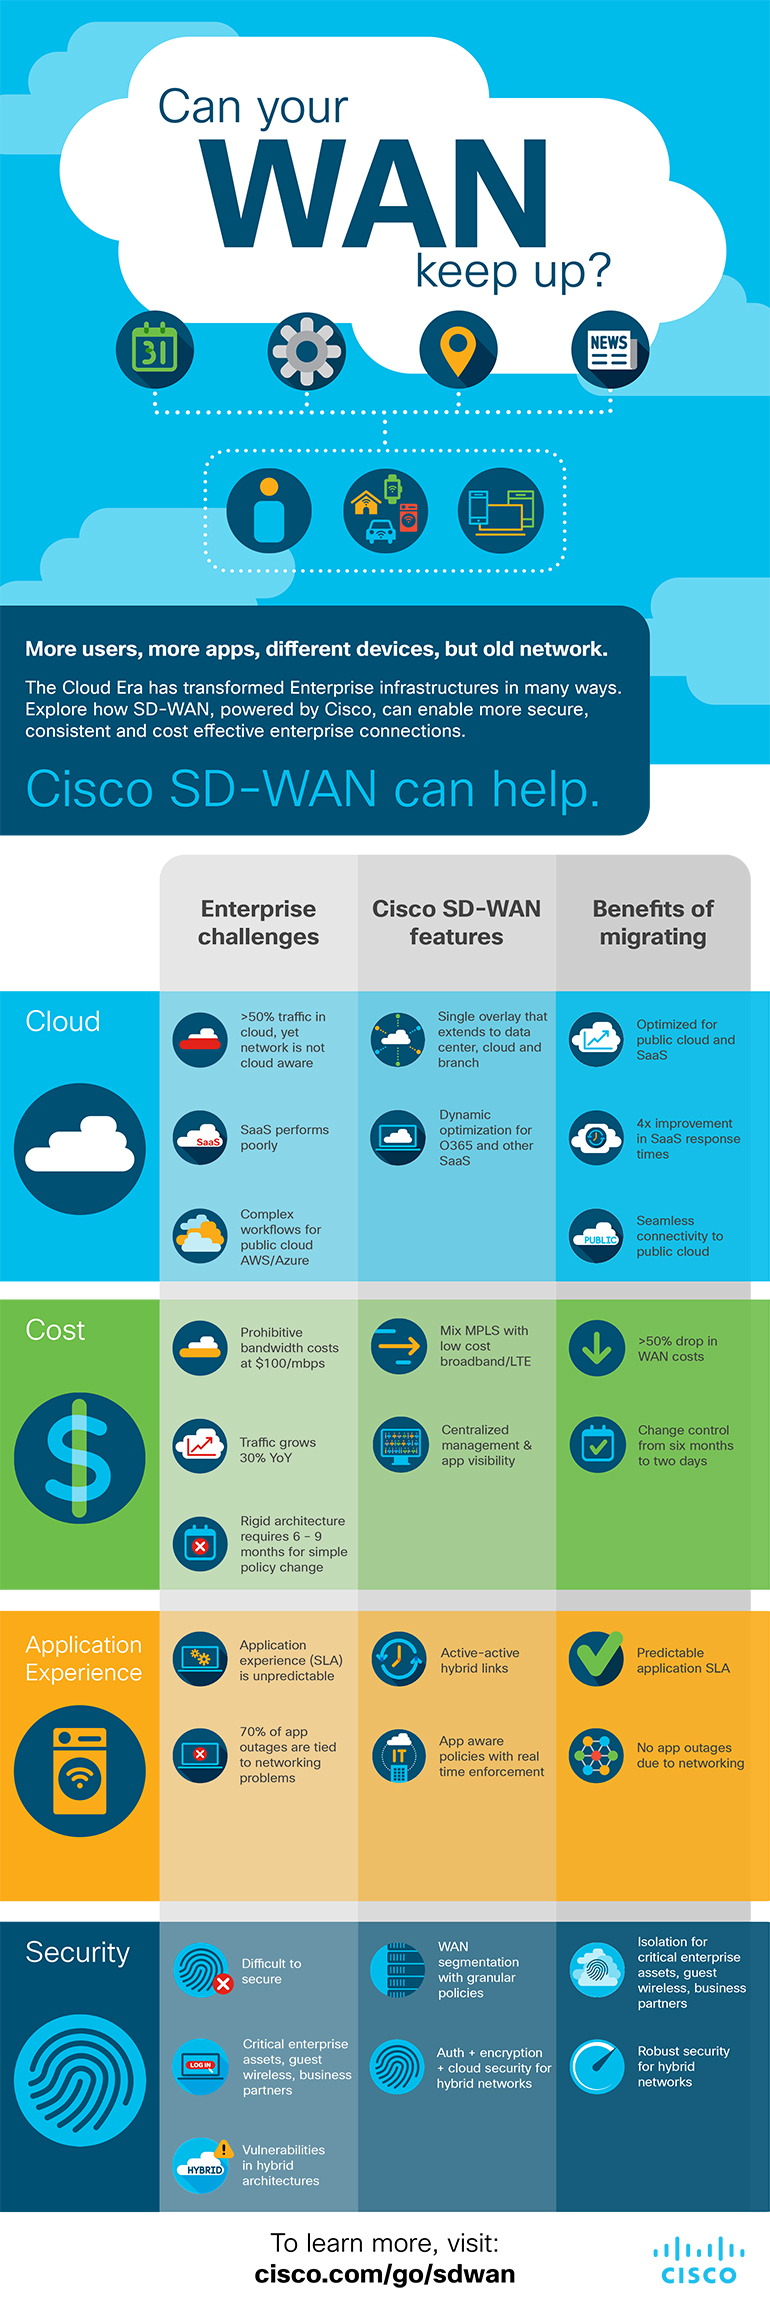 Infographic for Cisco SD-WAN features